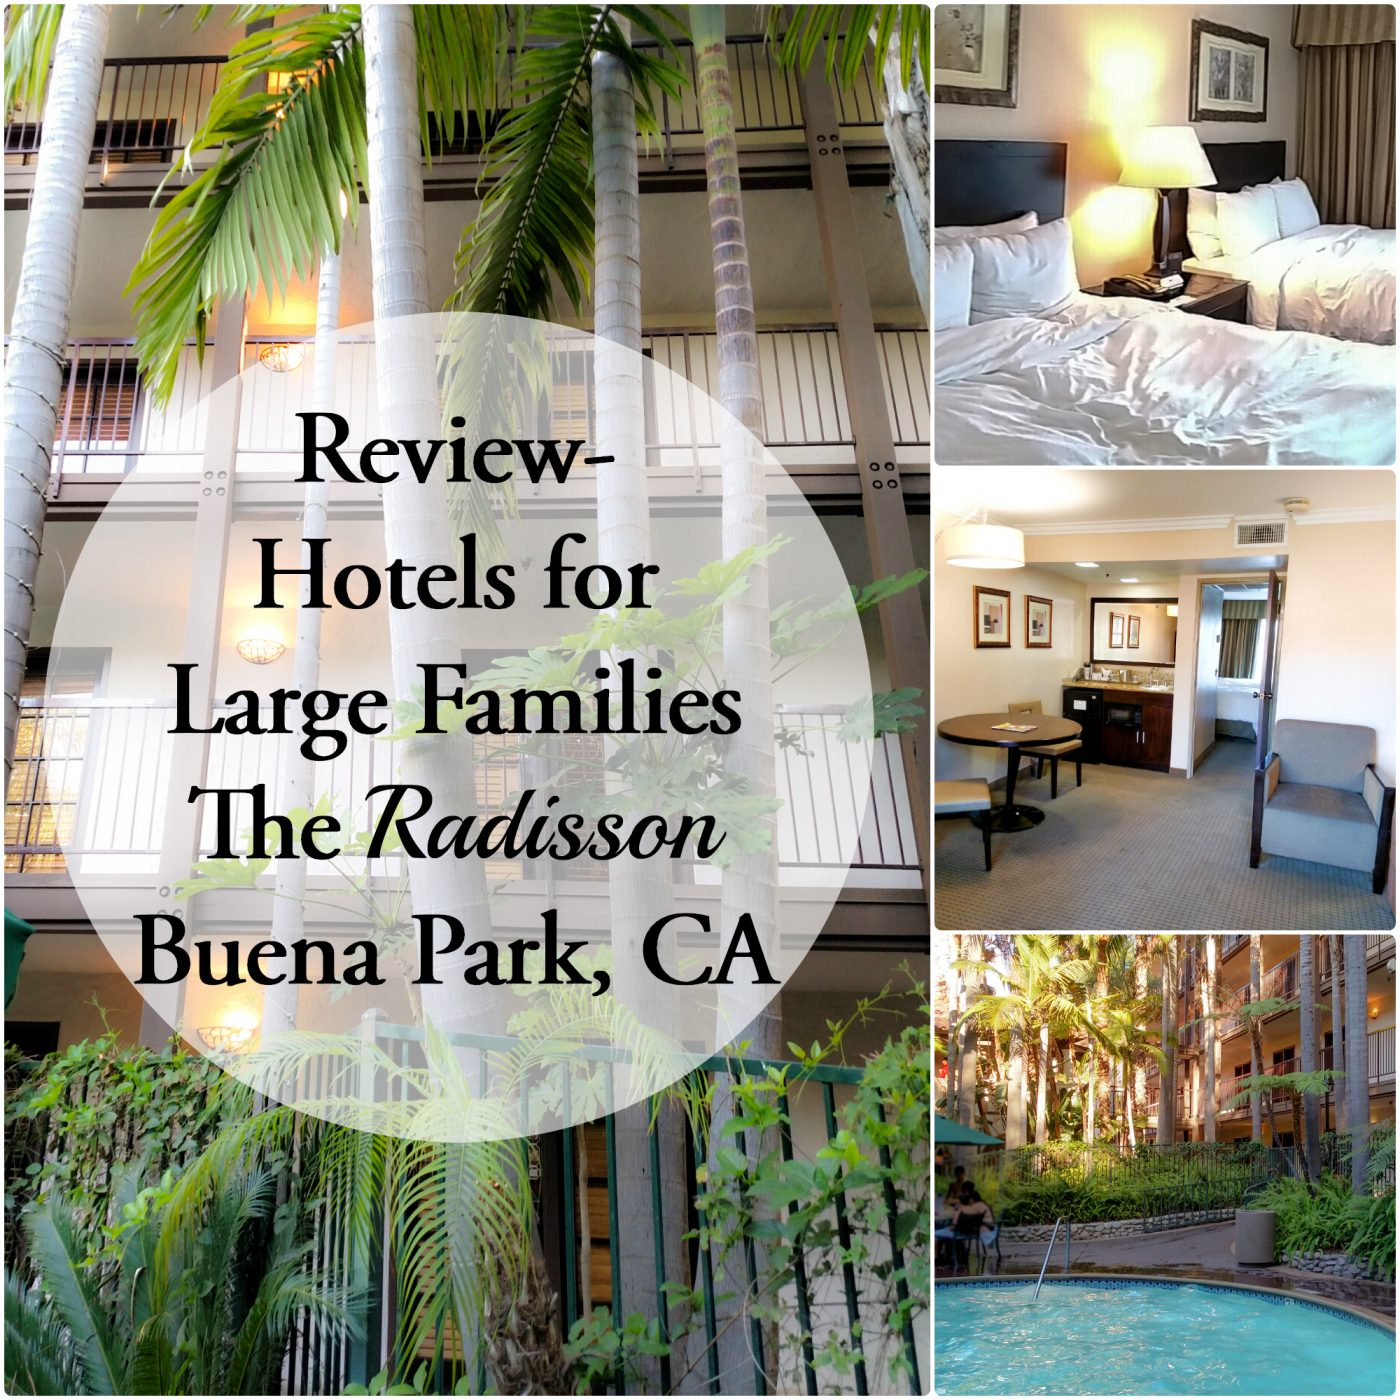 Finding a hotel for a larger family (5+) is hard. Here is what we think of the Radisson Suites in Buena Park, CA